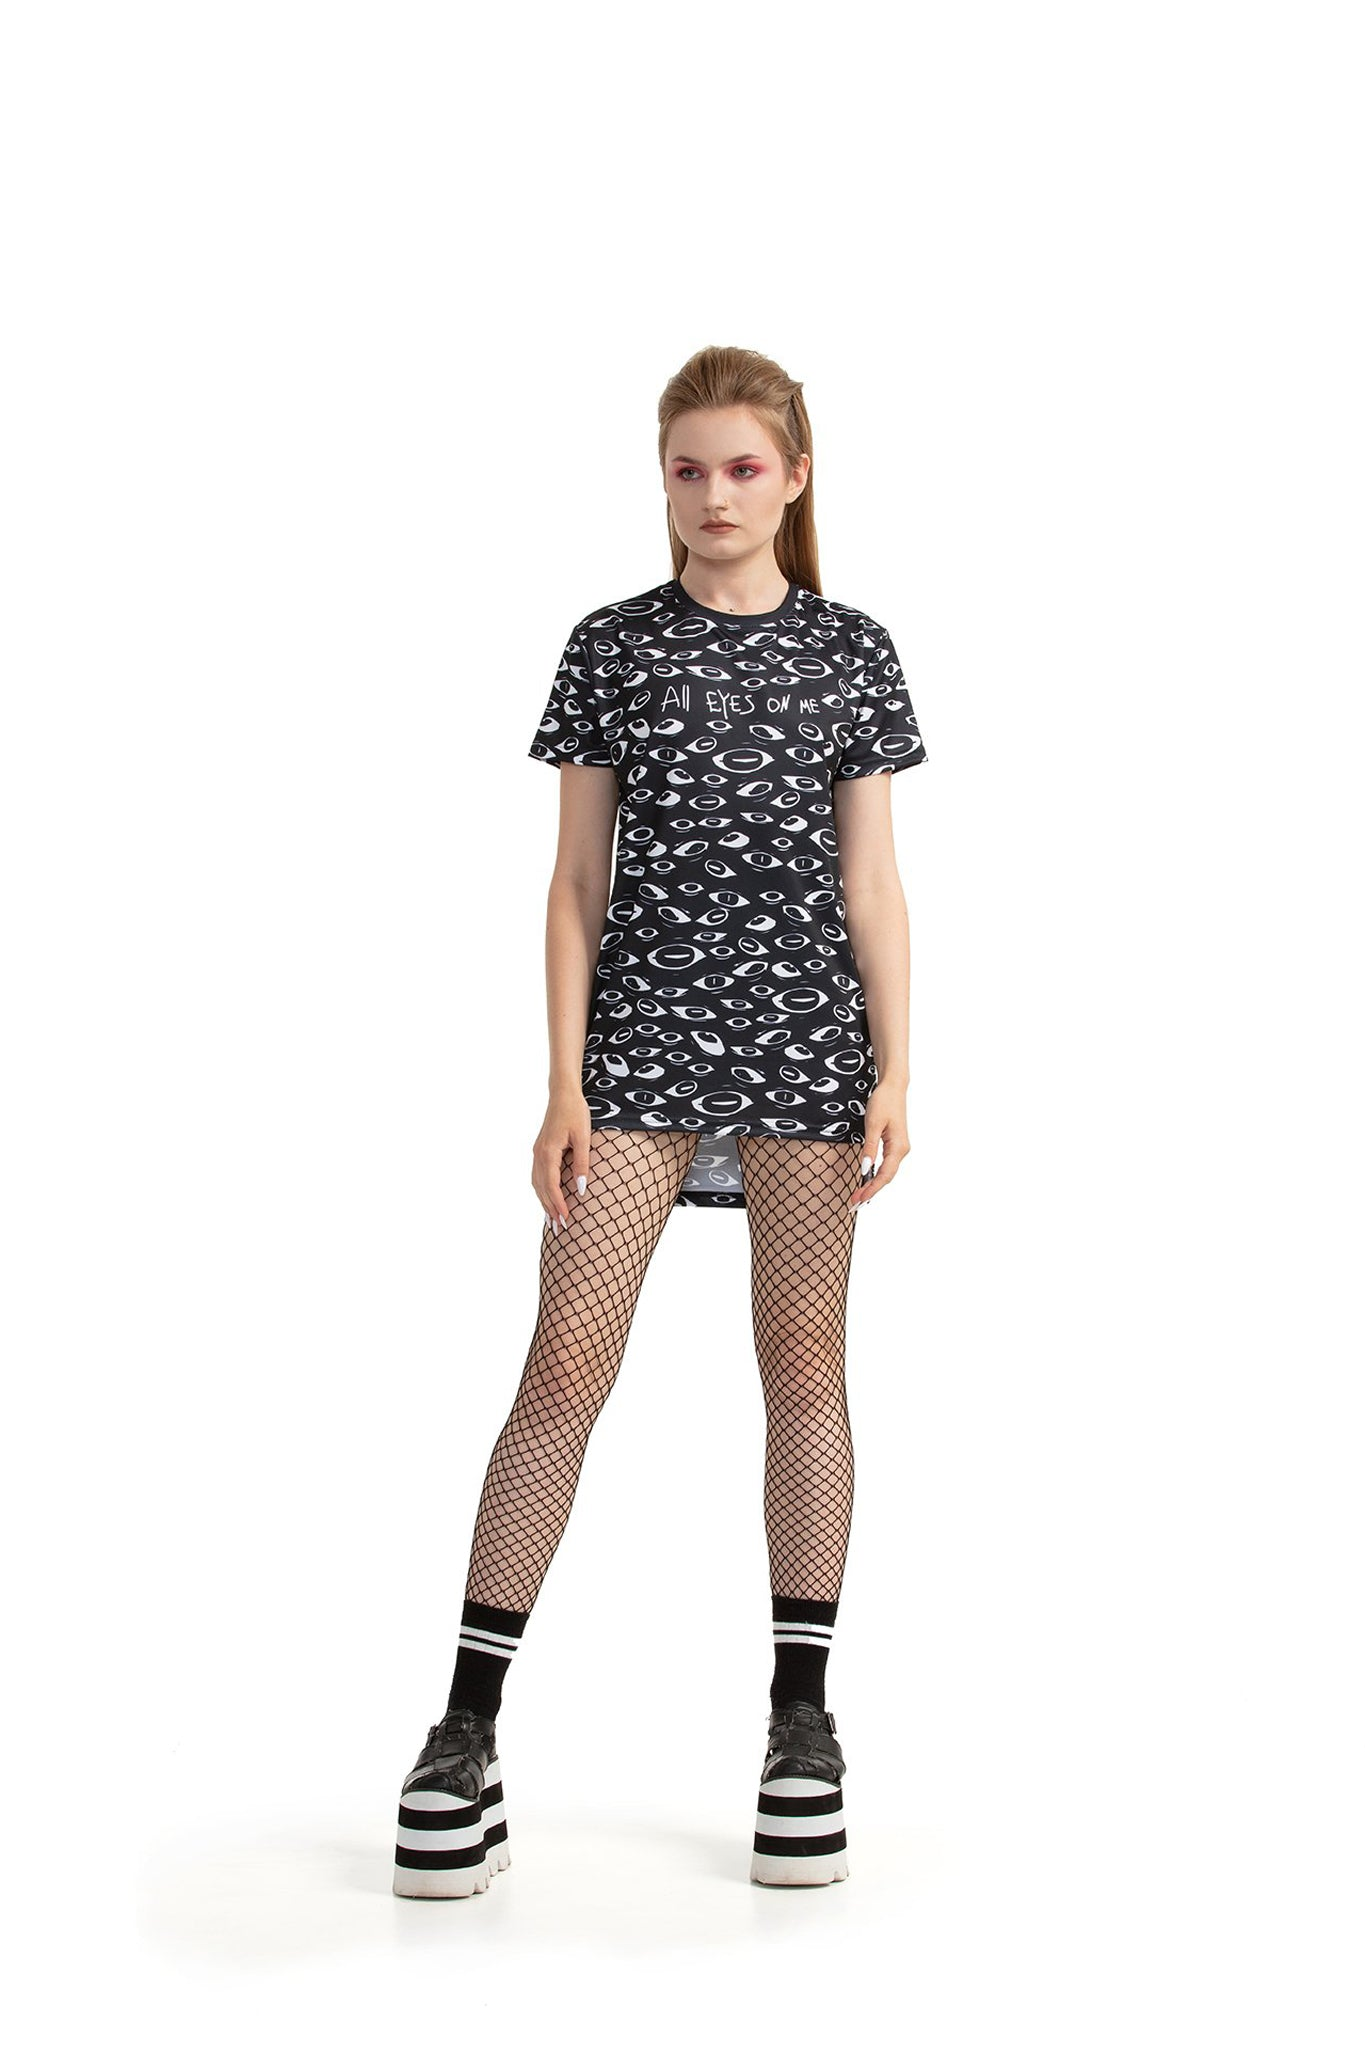 All Eyes On Me - regular fit T-shirt with side cuts